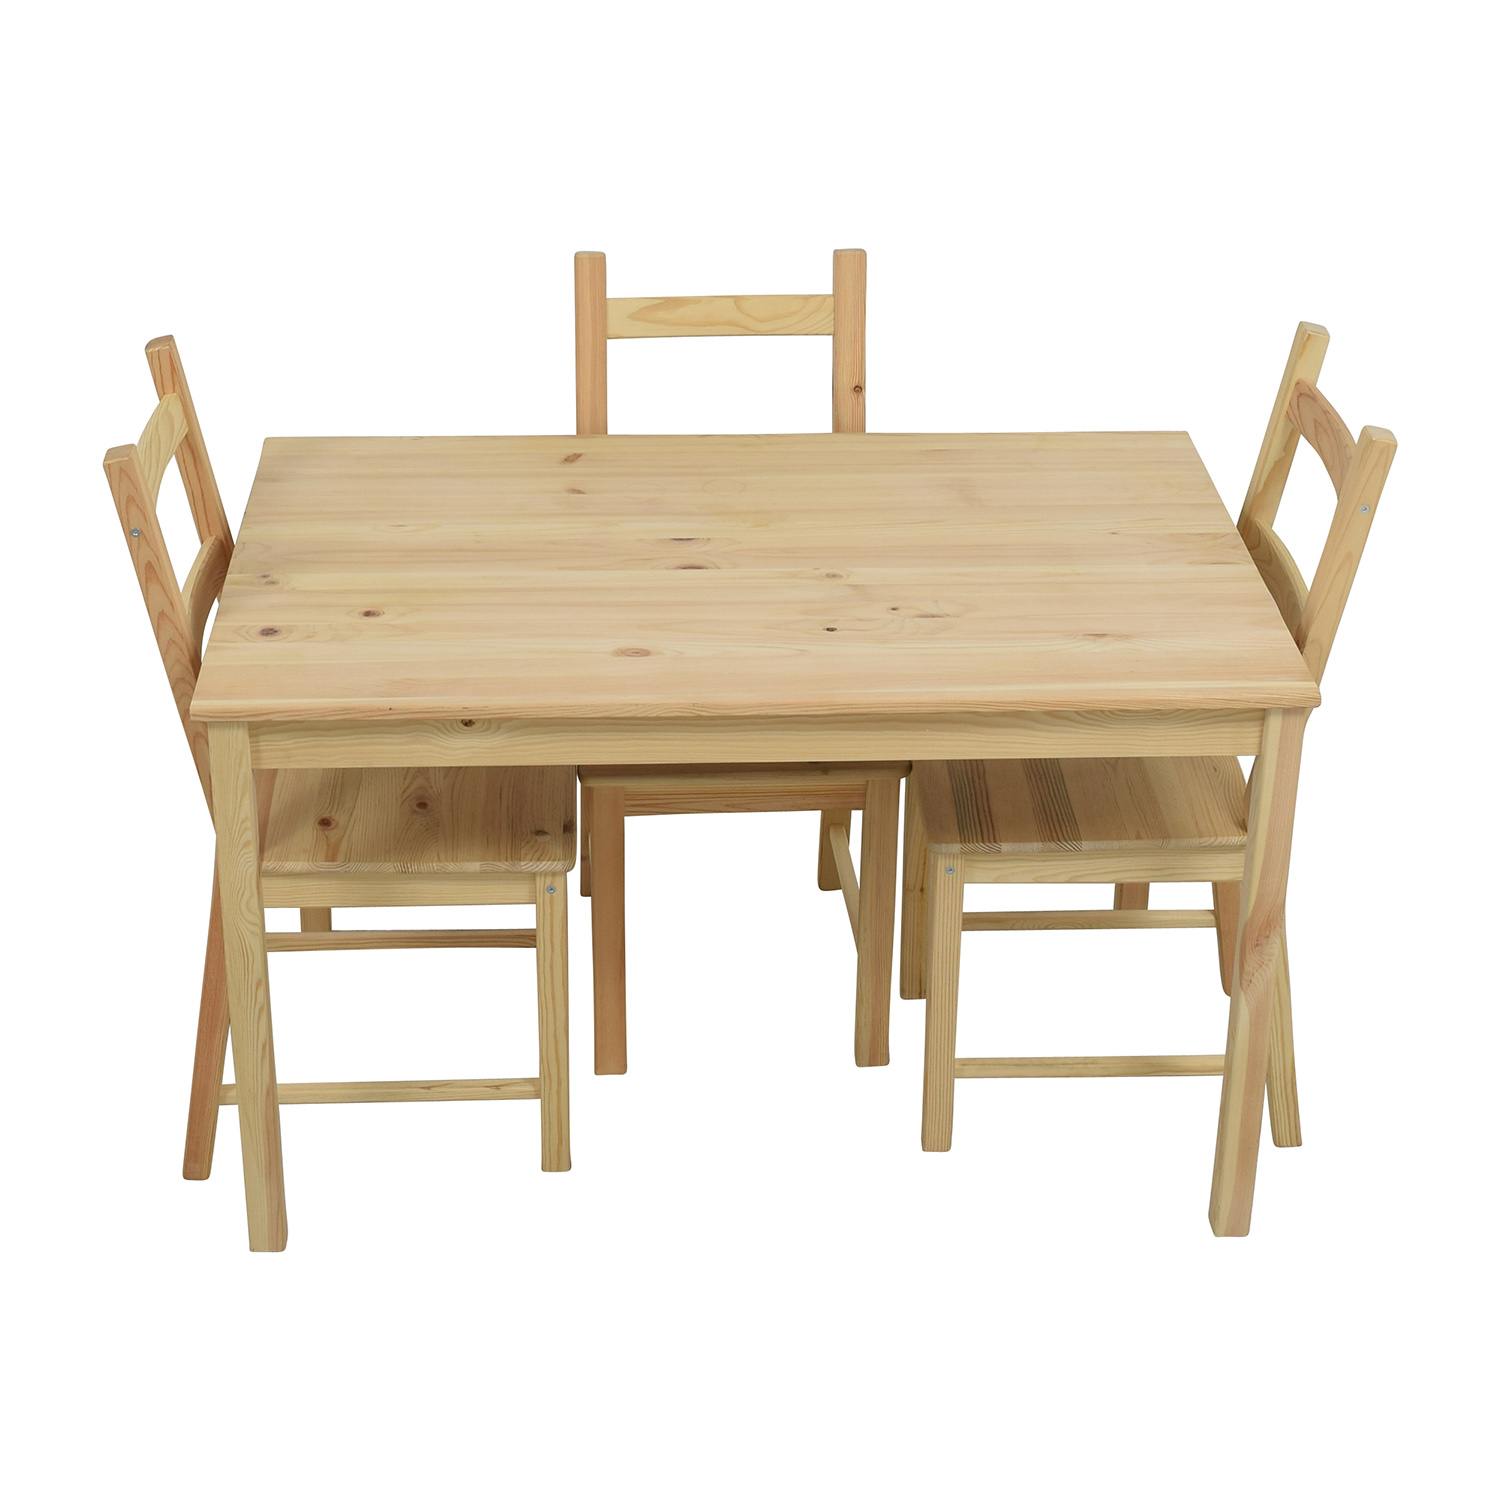 IKEA IKEA INGO Pine Table with IVAR Pine Chairs price